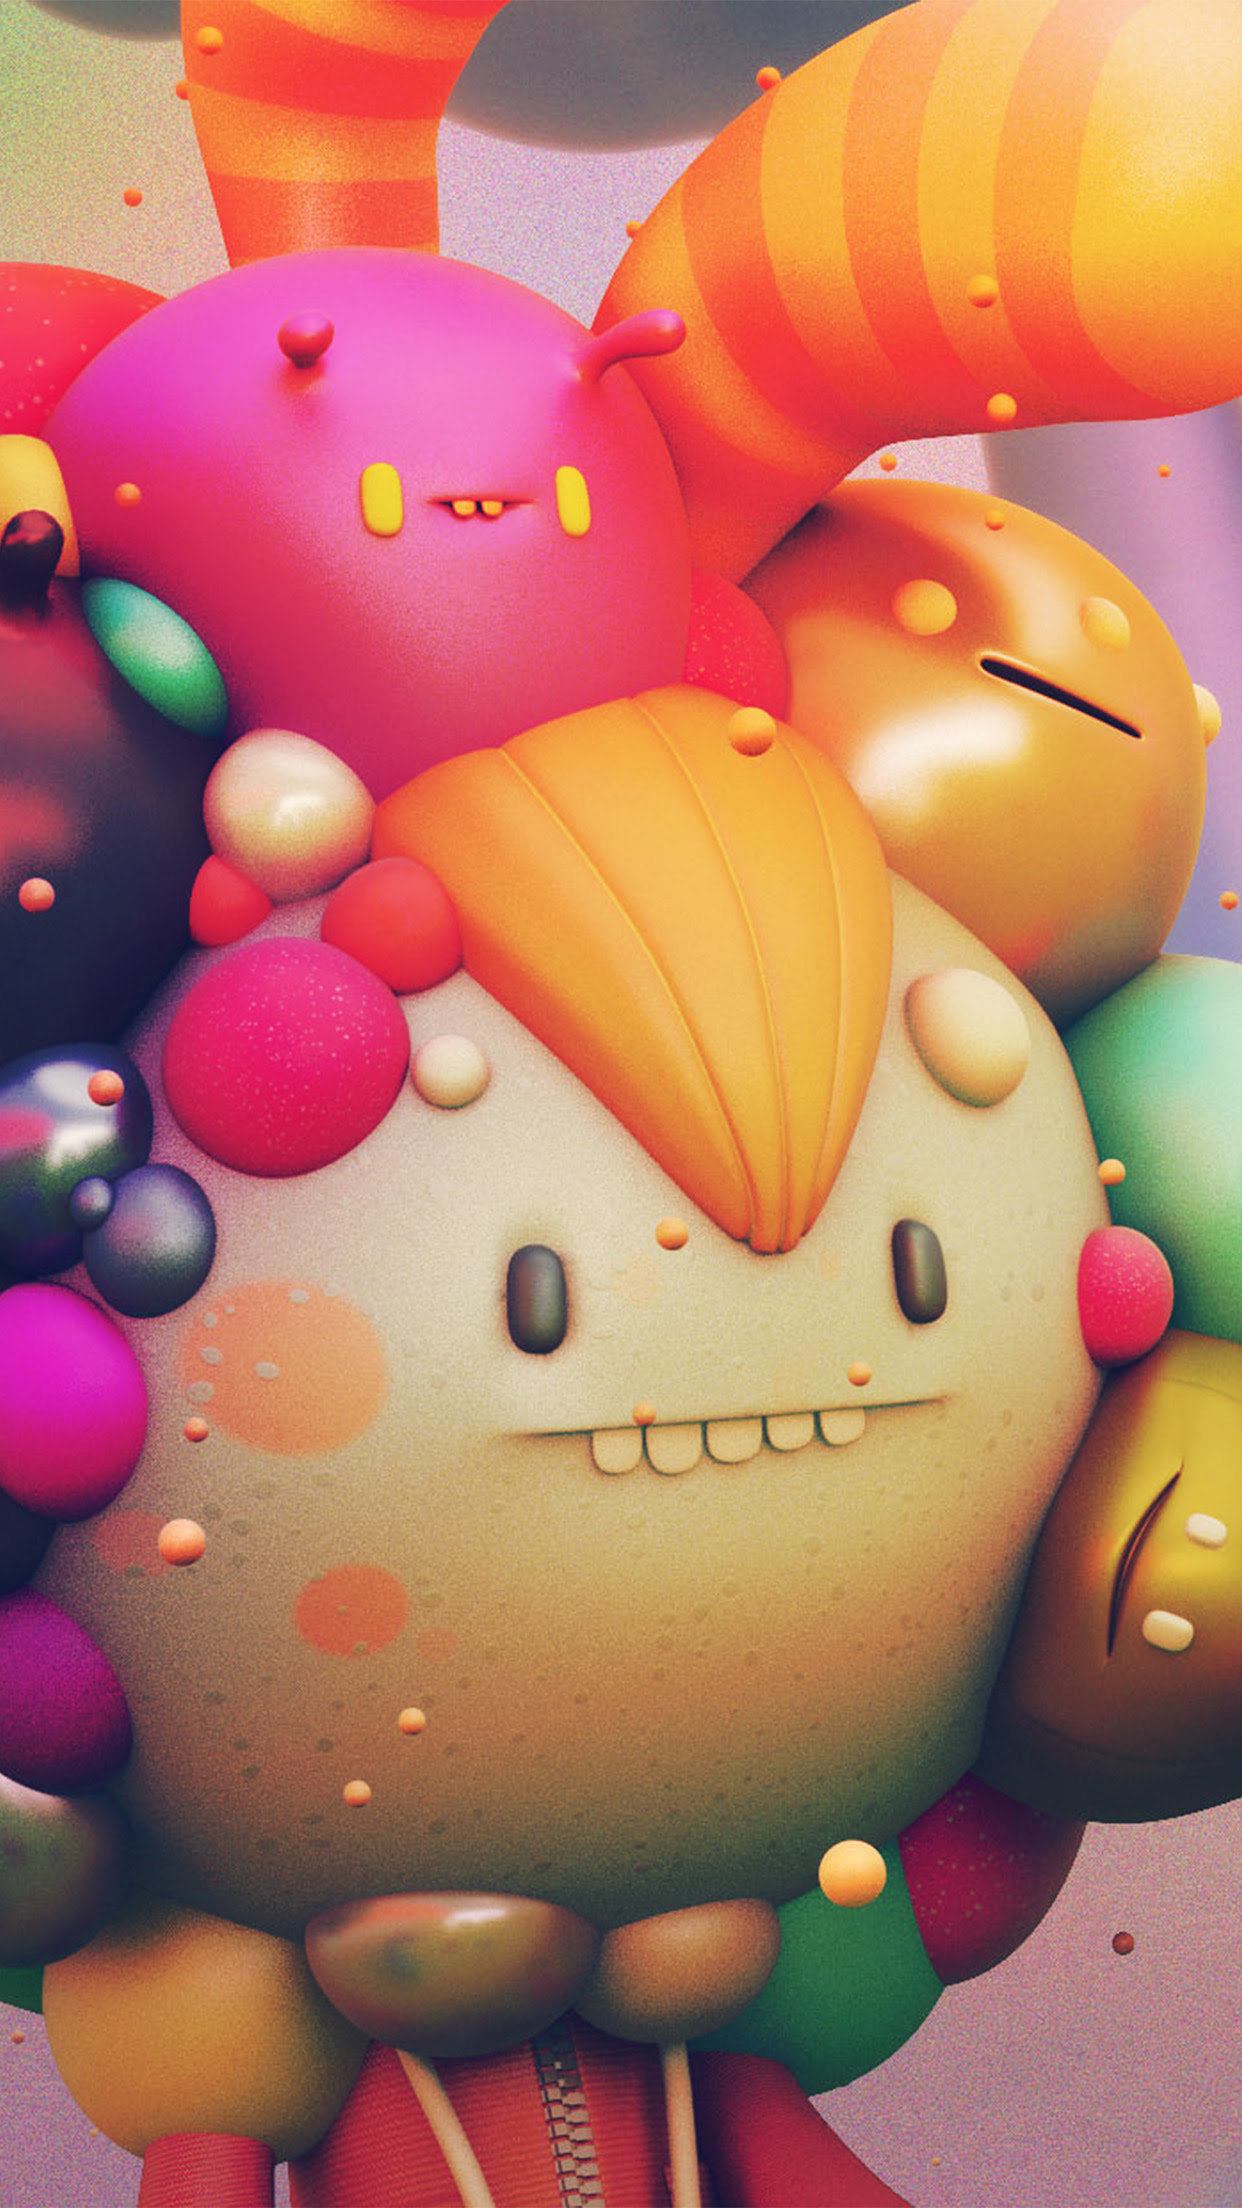 Download 78 Wallpaper 3d Cute Gratis